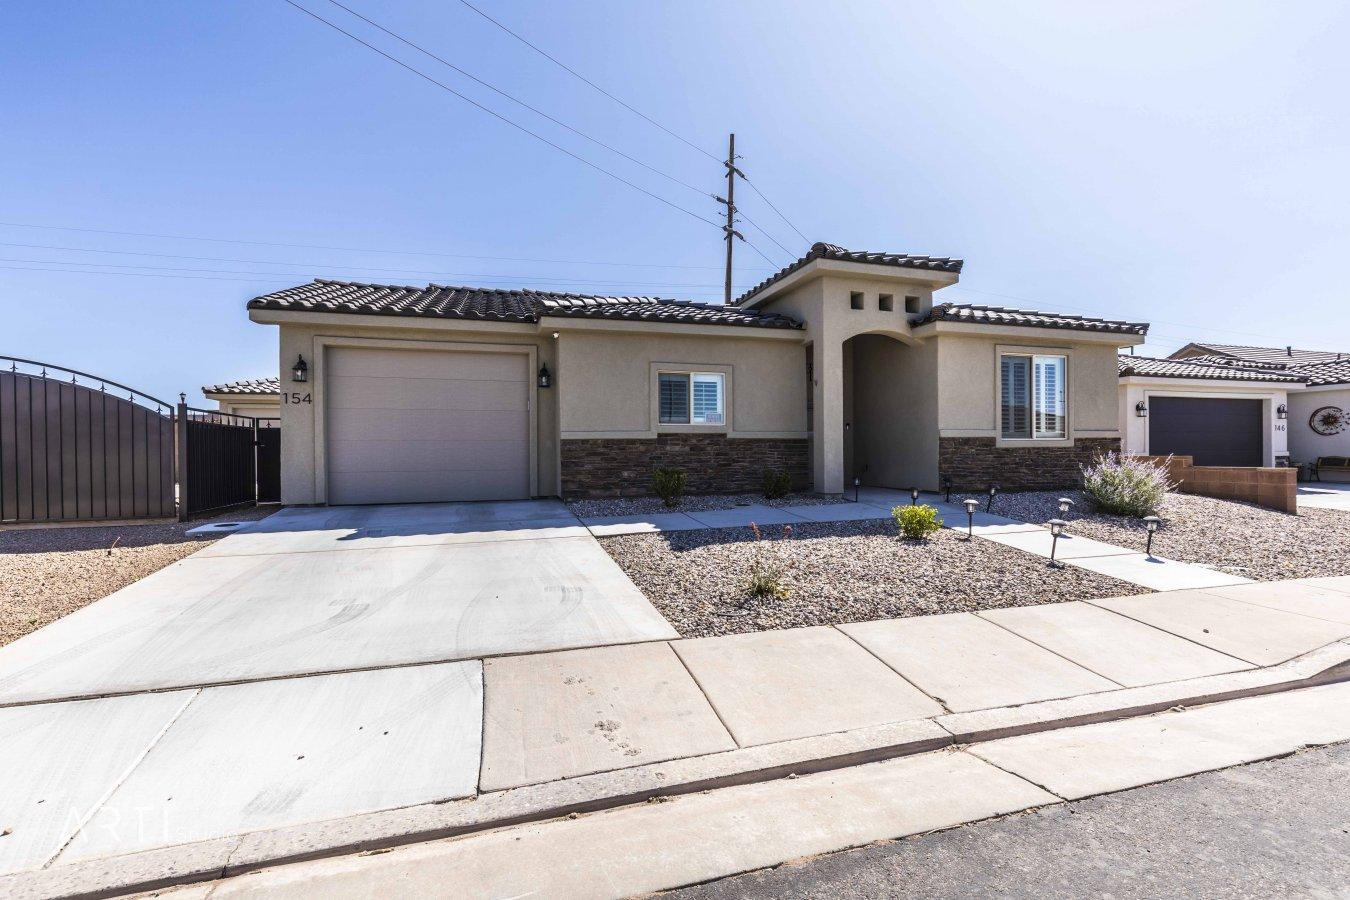 Check out this one of a kind home!  Built in 2018 with both attached and detached garages.  Just 10 minutes away from Sand Hollow Reservoir and easy access to the local dunes.  Fully fenced yard. Square footage and lot size to be verified by buyer.